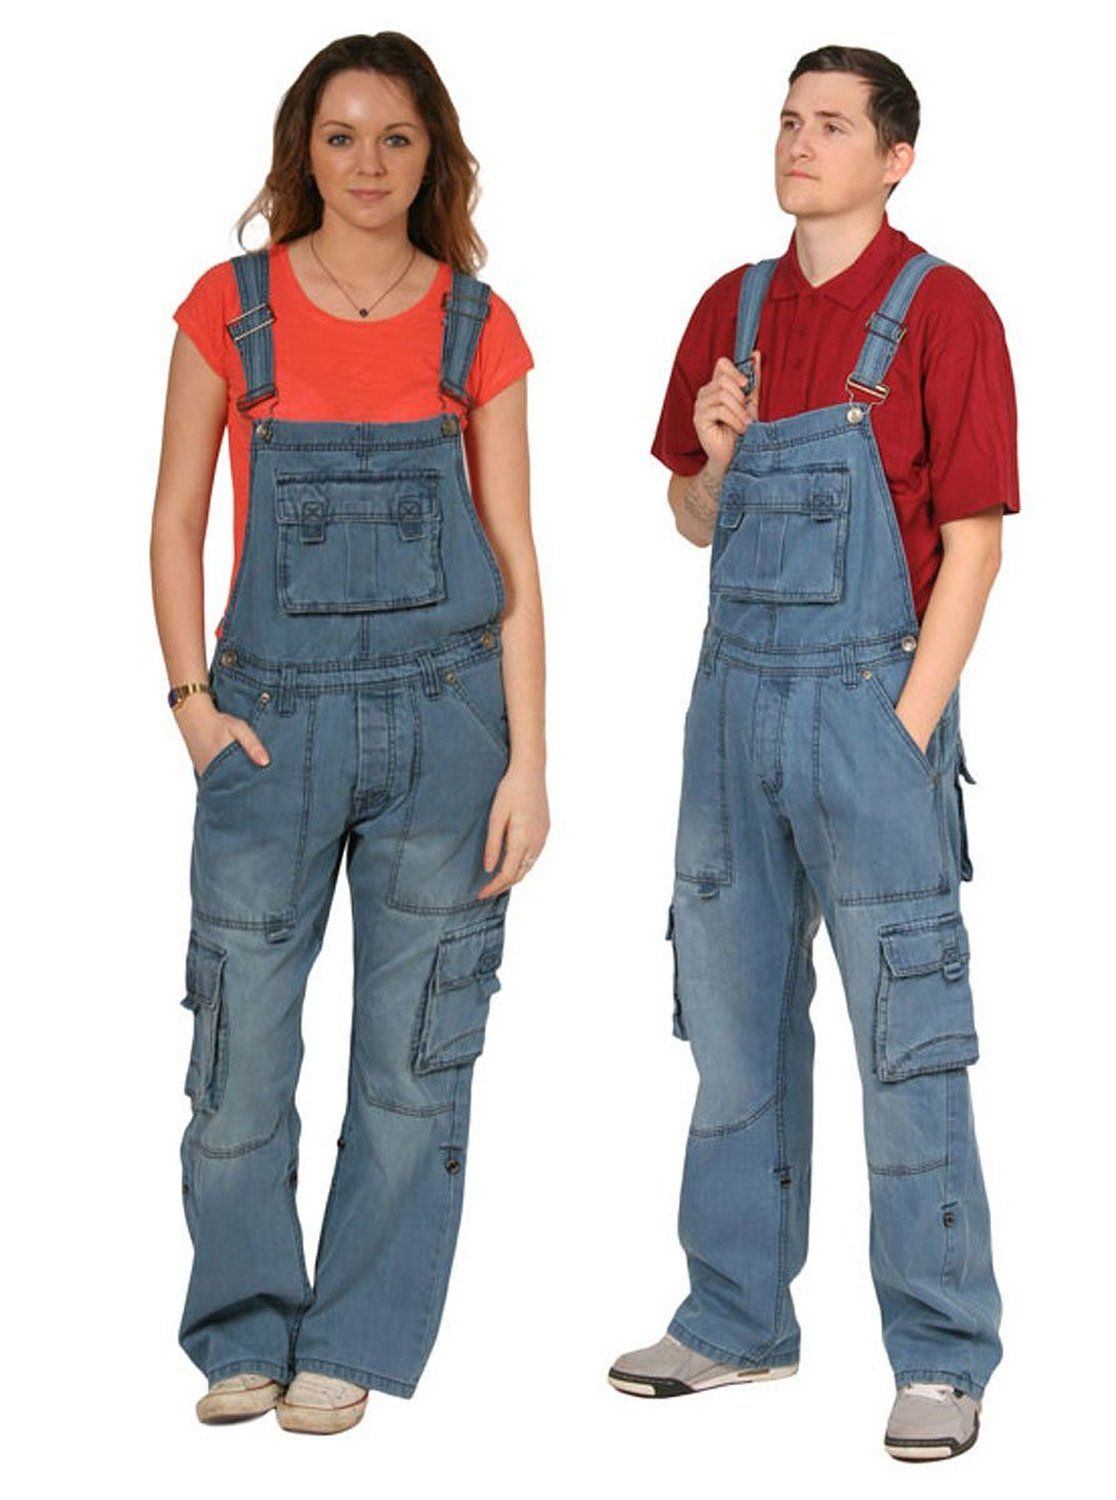 3dea293c858 Cargo Pocket Bib Overalls for Men Women Unisex Light Wash Jean Bibs at  Amazon Men s Clothing store